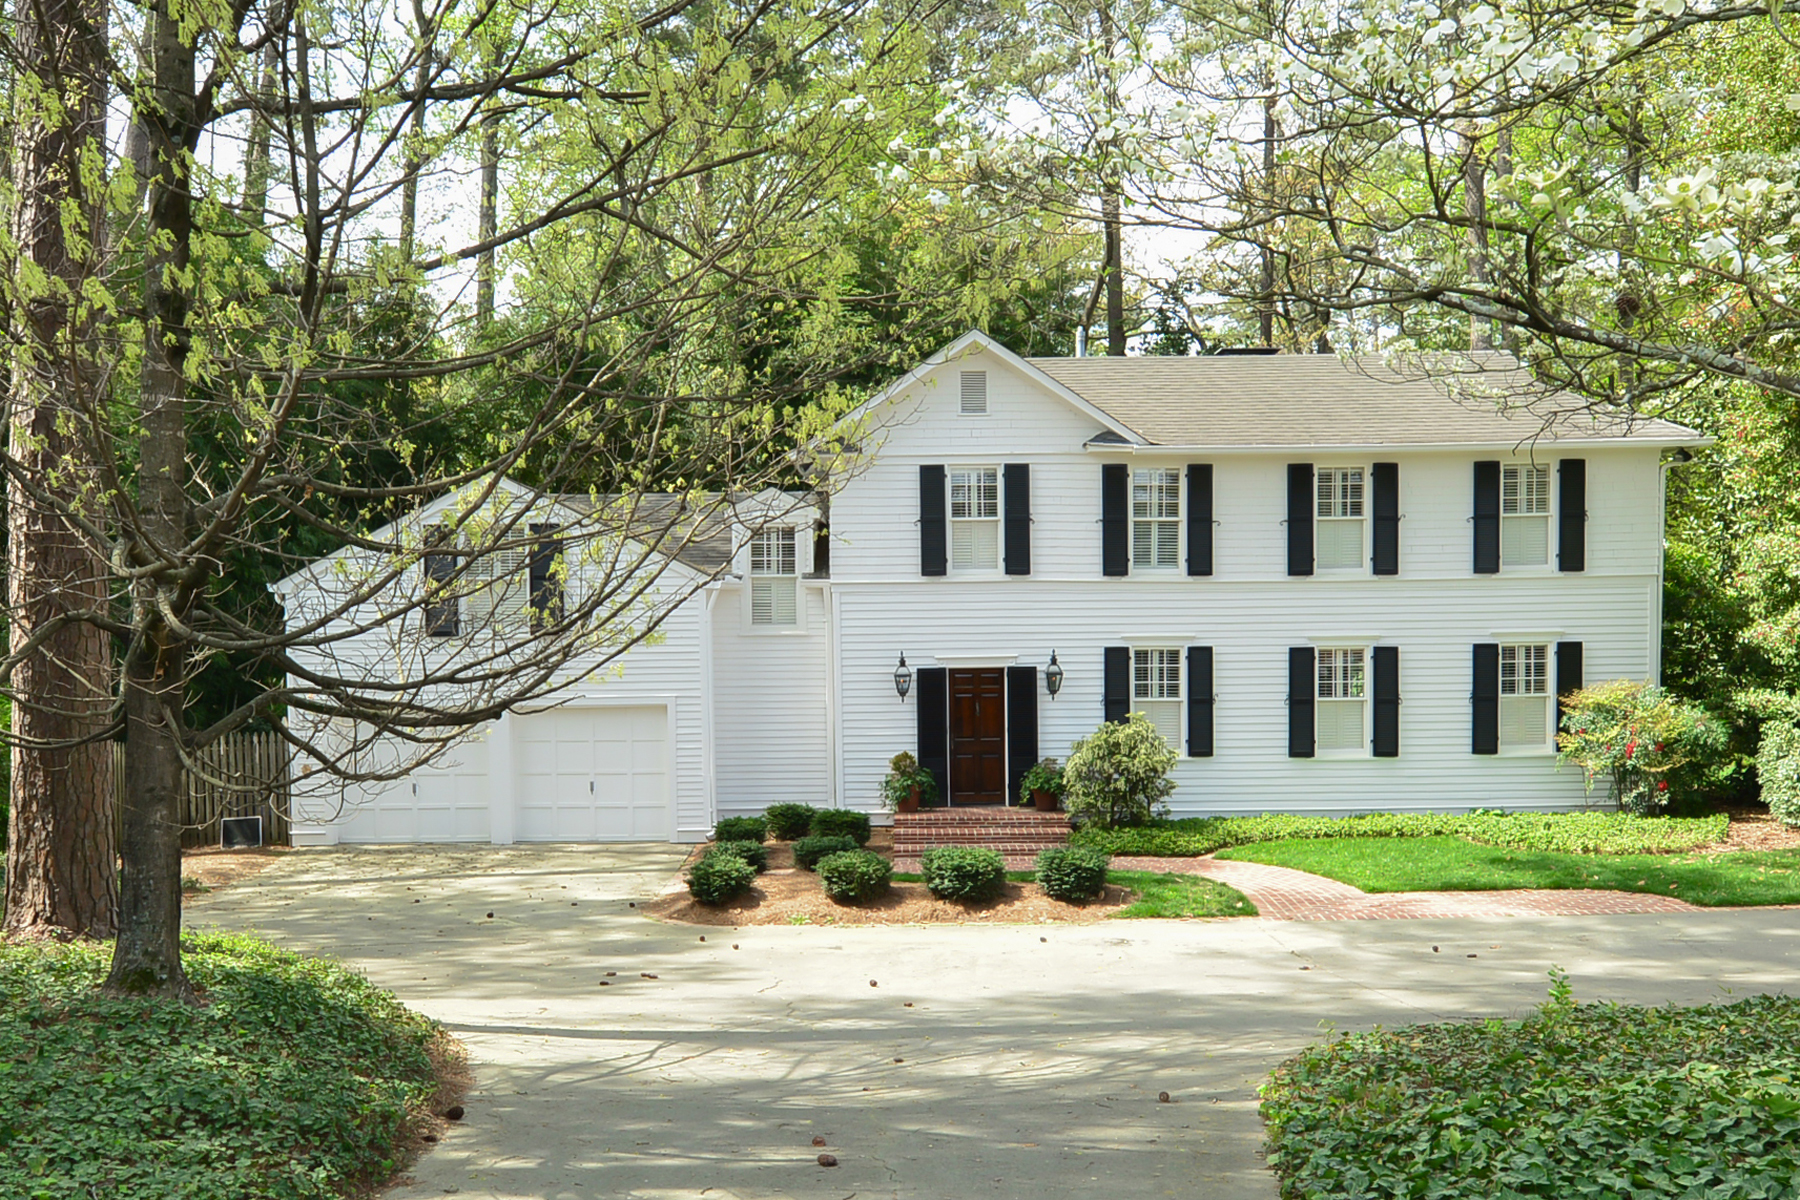 Single Family Home for Sale at Historic Brookhaven Charmer With Golf View 100 W Brookhaven Drive NE Atlanta, Georgia 30319 United States